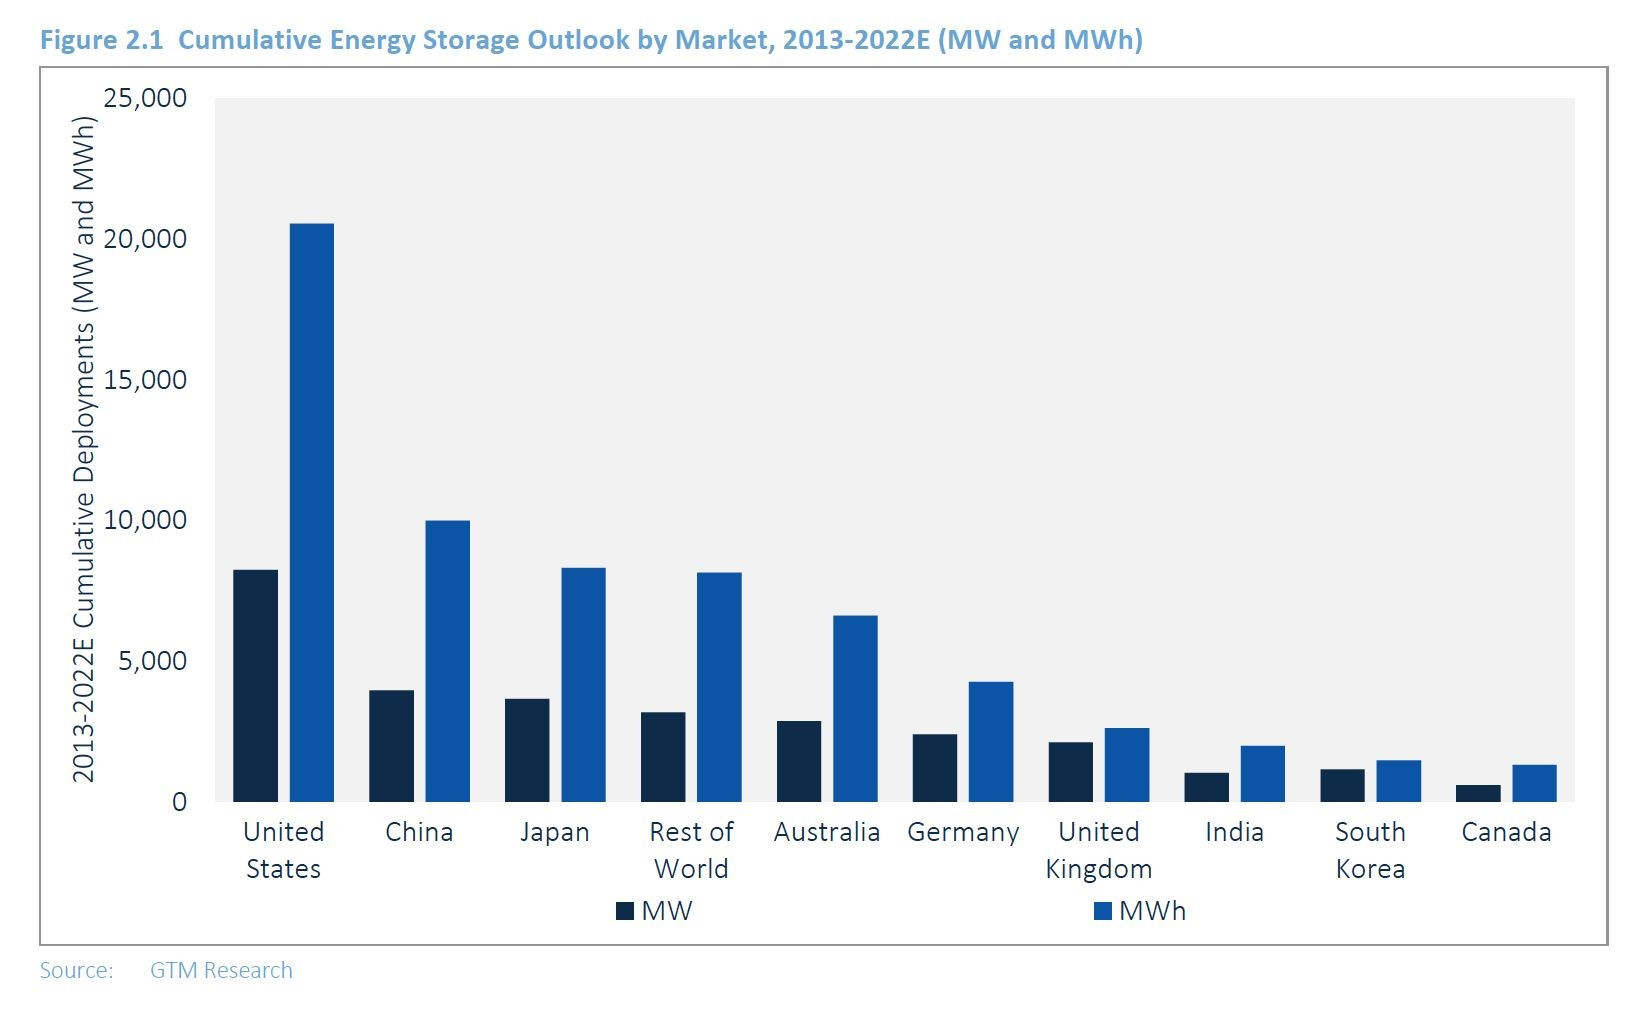 Chart showing cumulative energy storage forecast by country, 2013-2022E